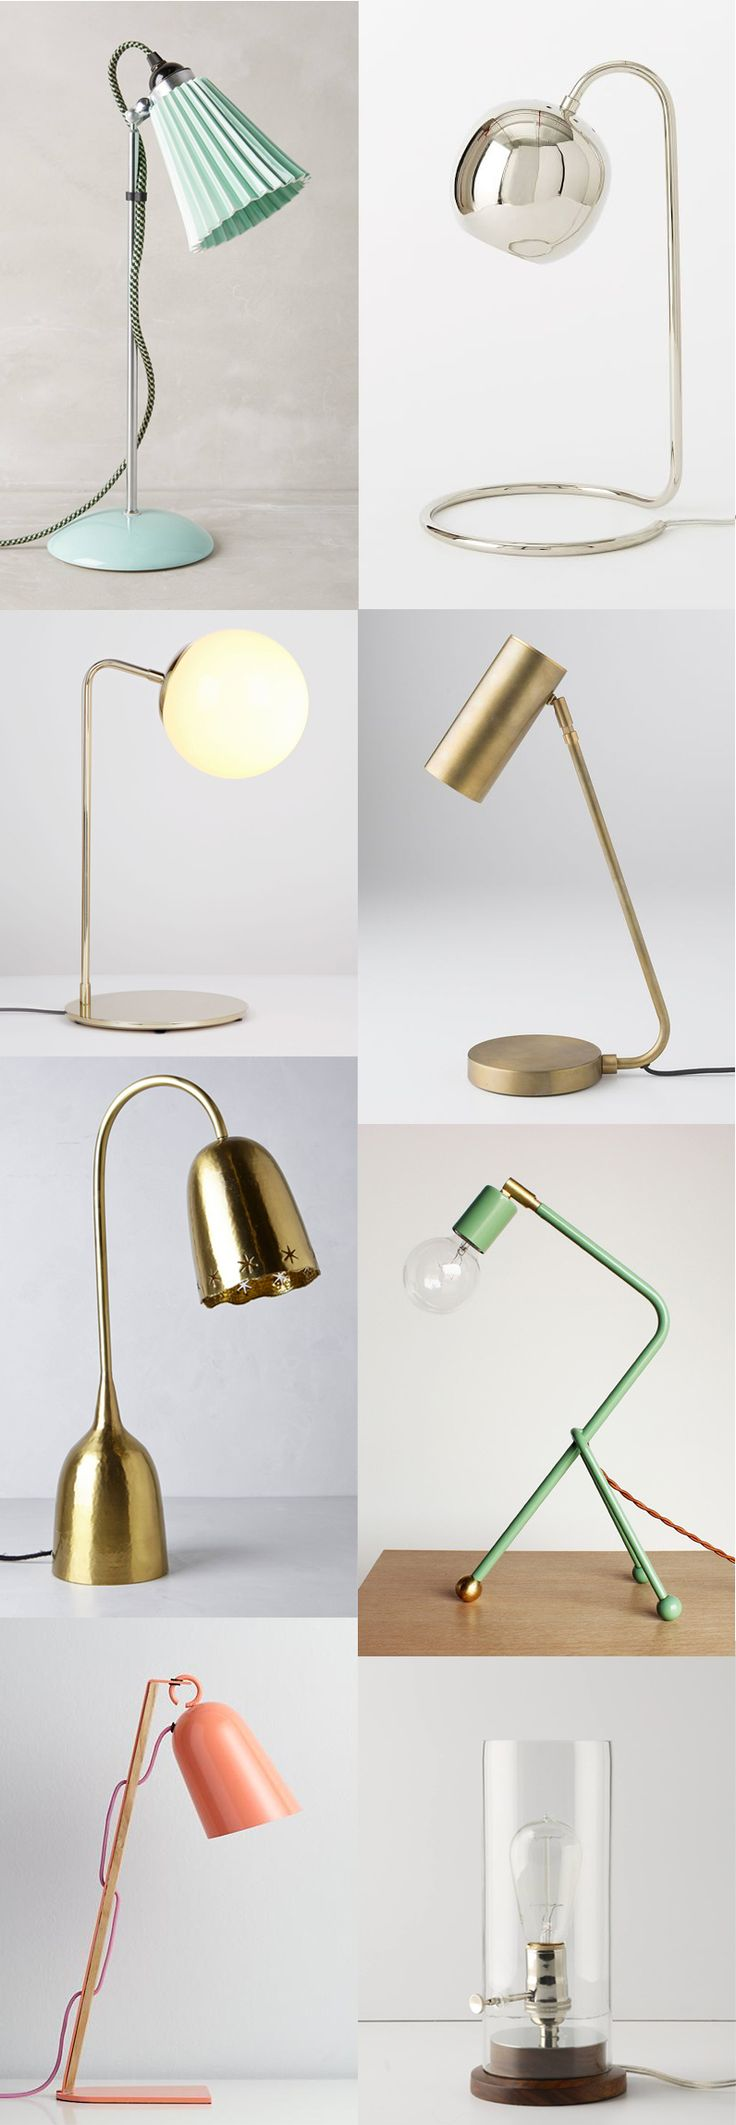 Desk Lamps: My Top Picks for Modern Workspace Lighting